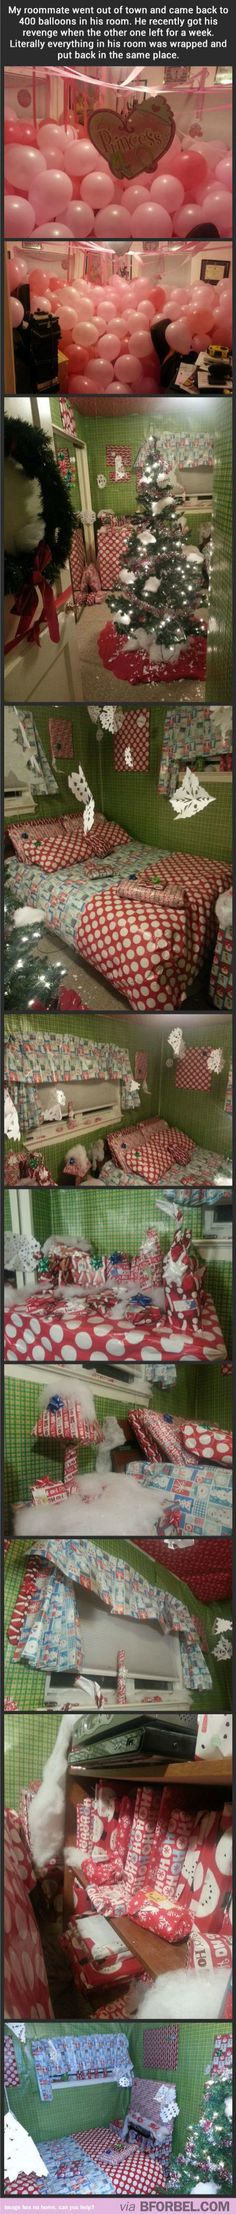 I absolutely love these kind of practical jokes! I totally did the wrapping paper one before, sadly I didn't have enough time or wrapping paper to get every square inch